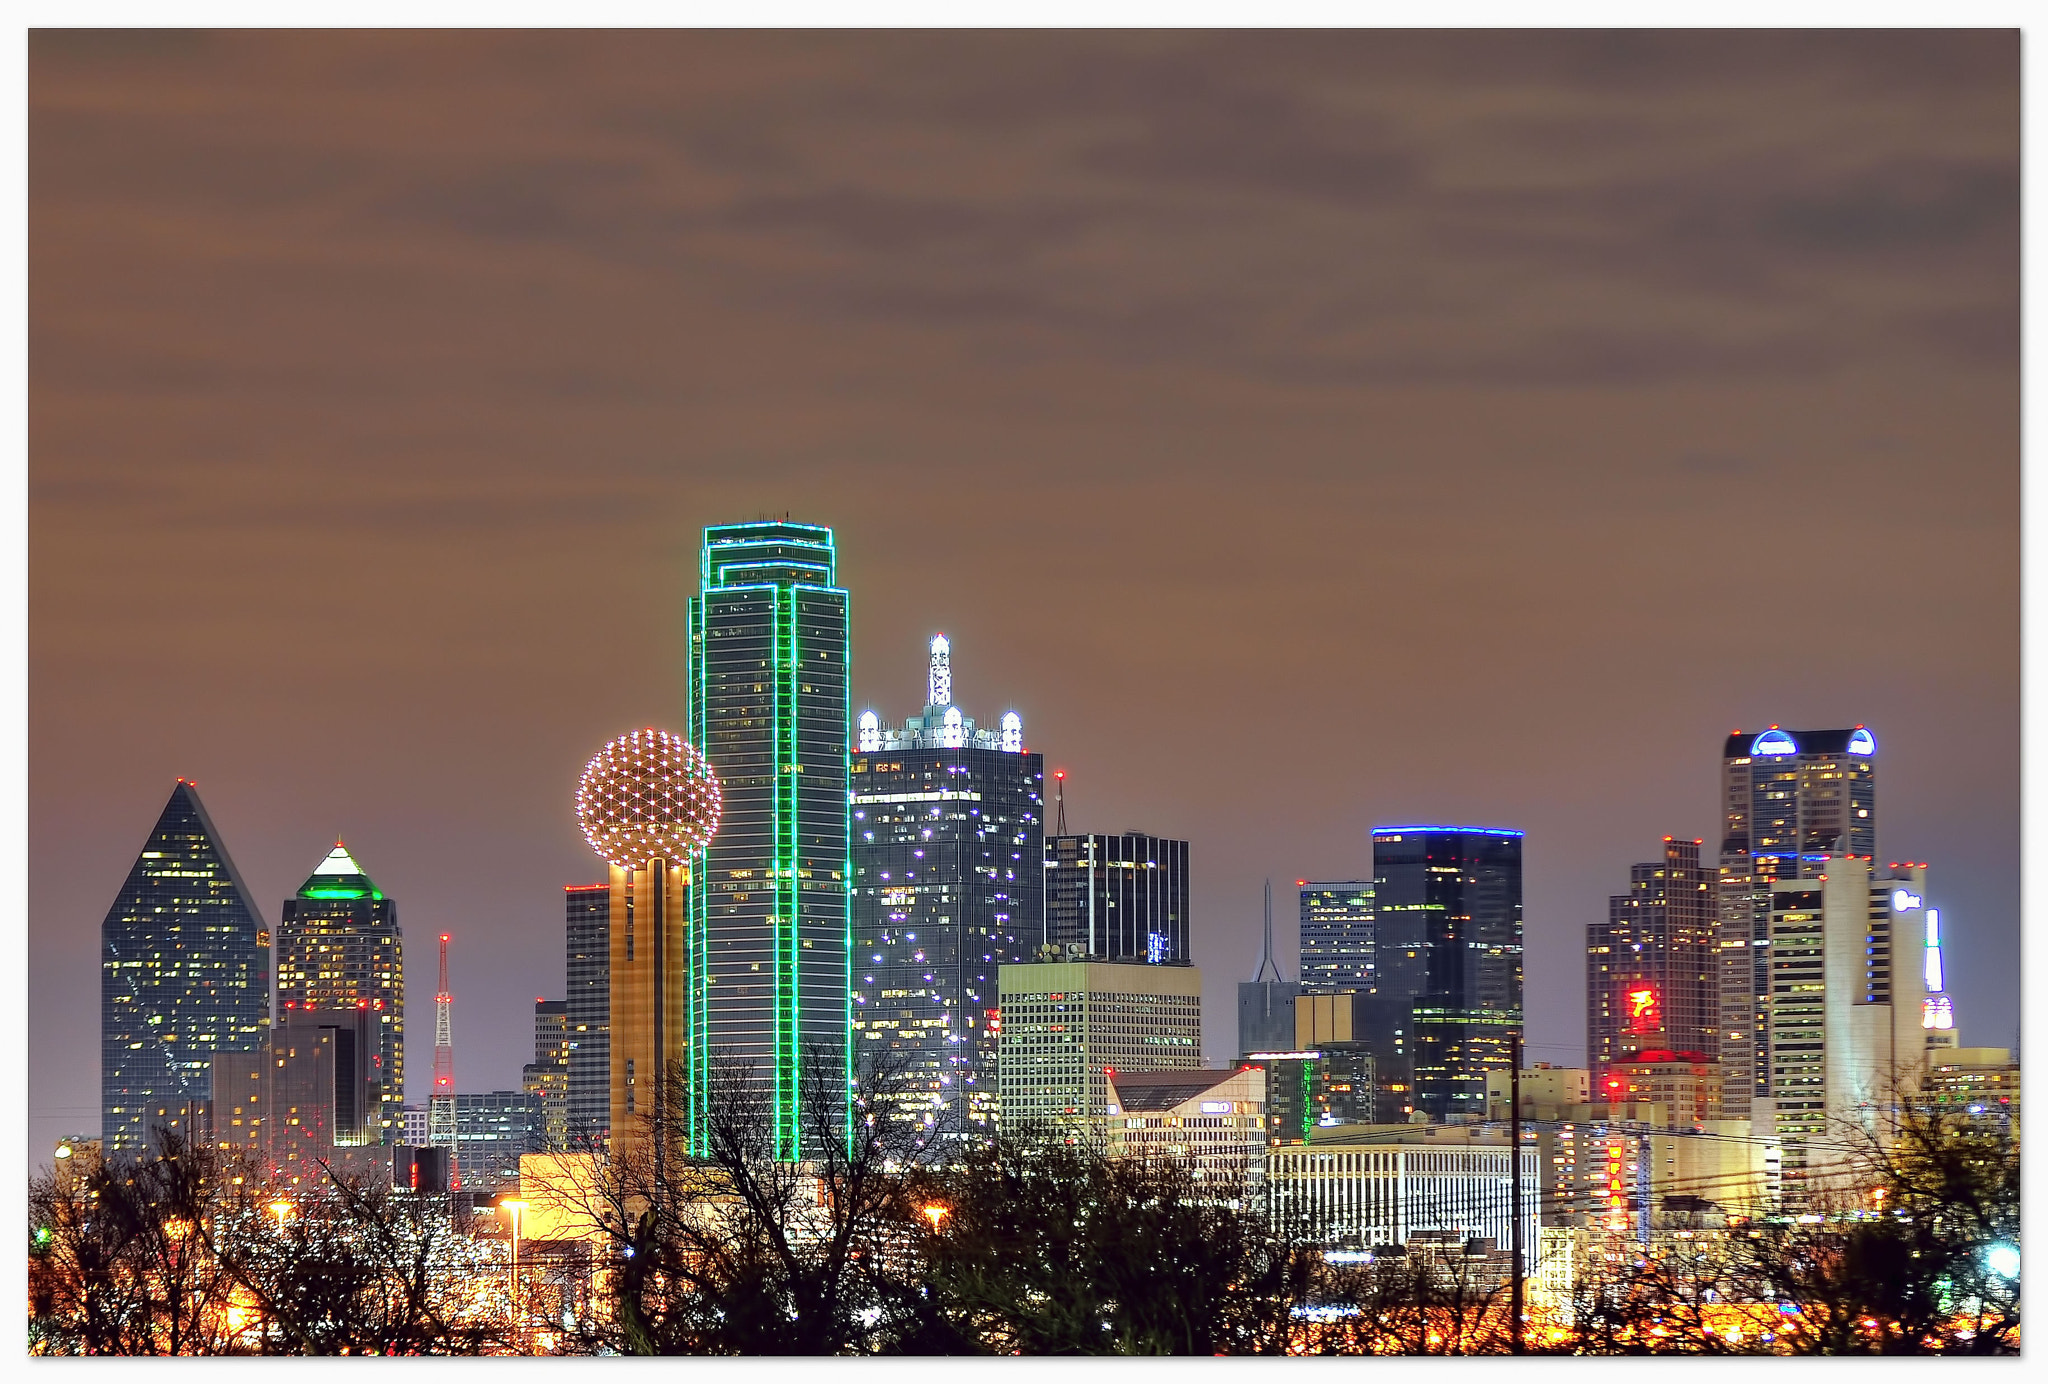 Photograph Dallas Skyline by Dave Hensley on 500px